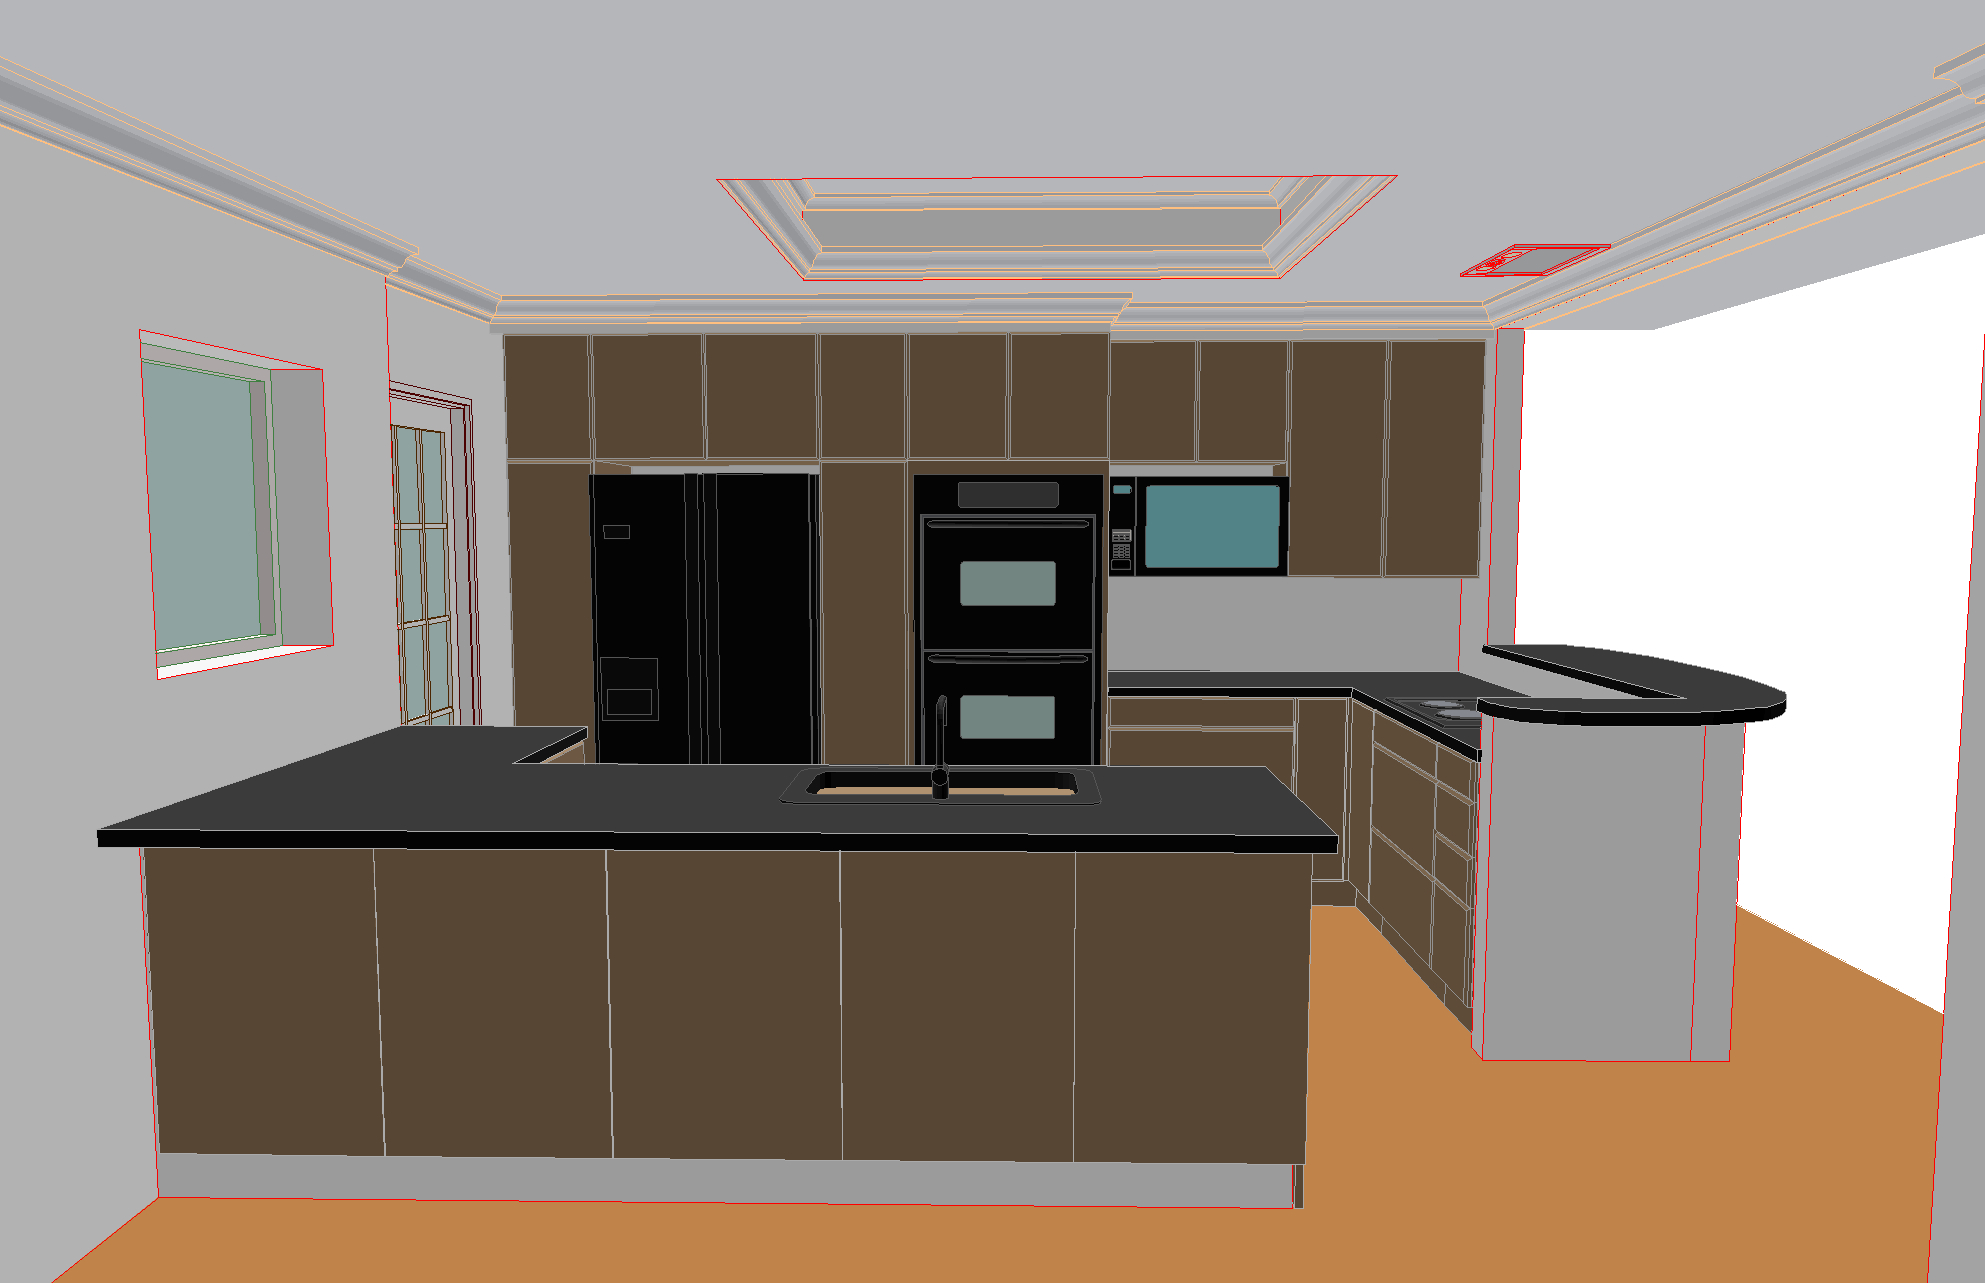 I create simple renderings of every project in 3D during the design process.